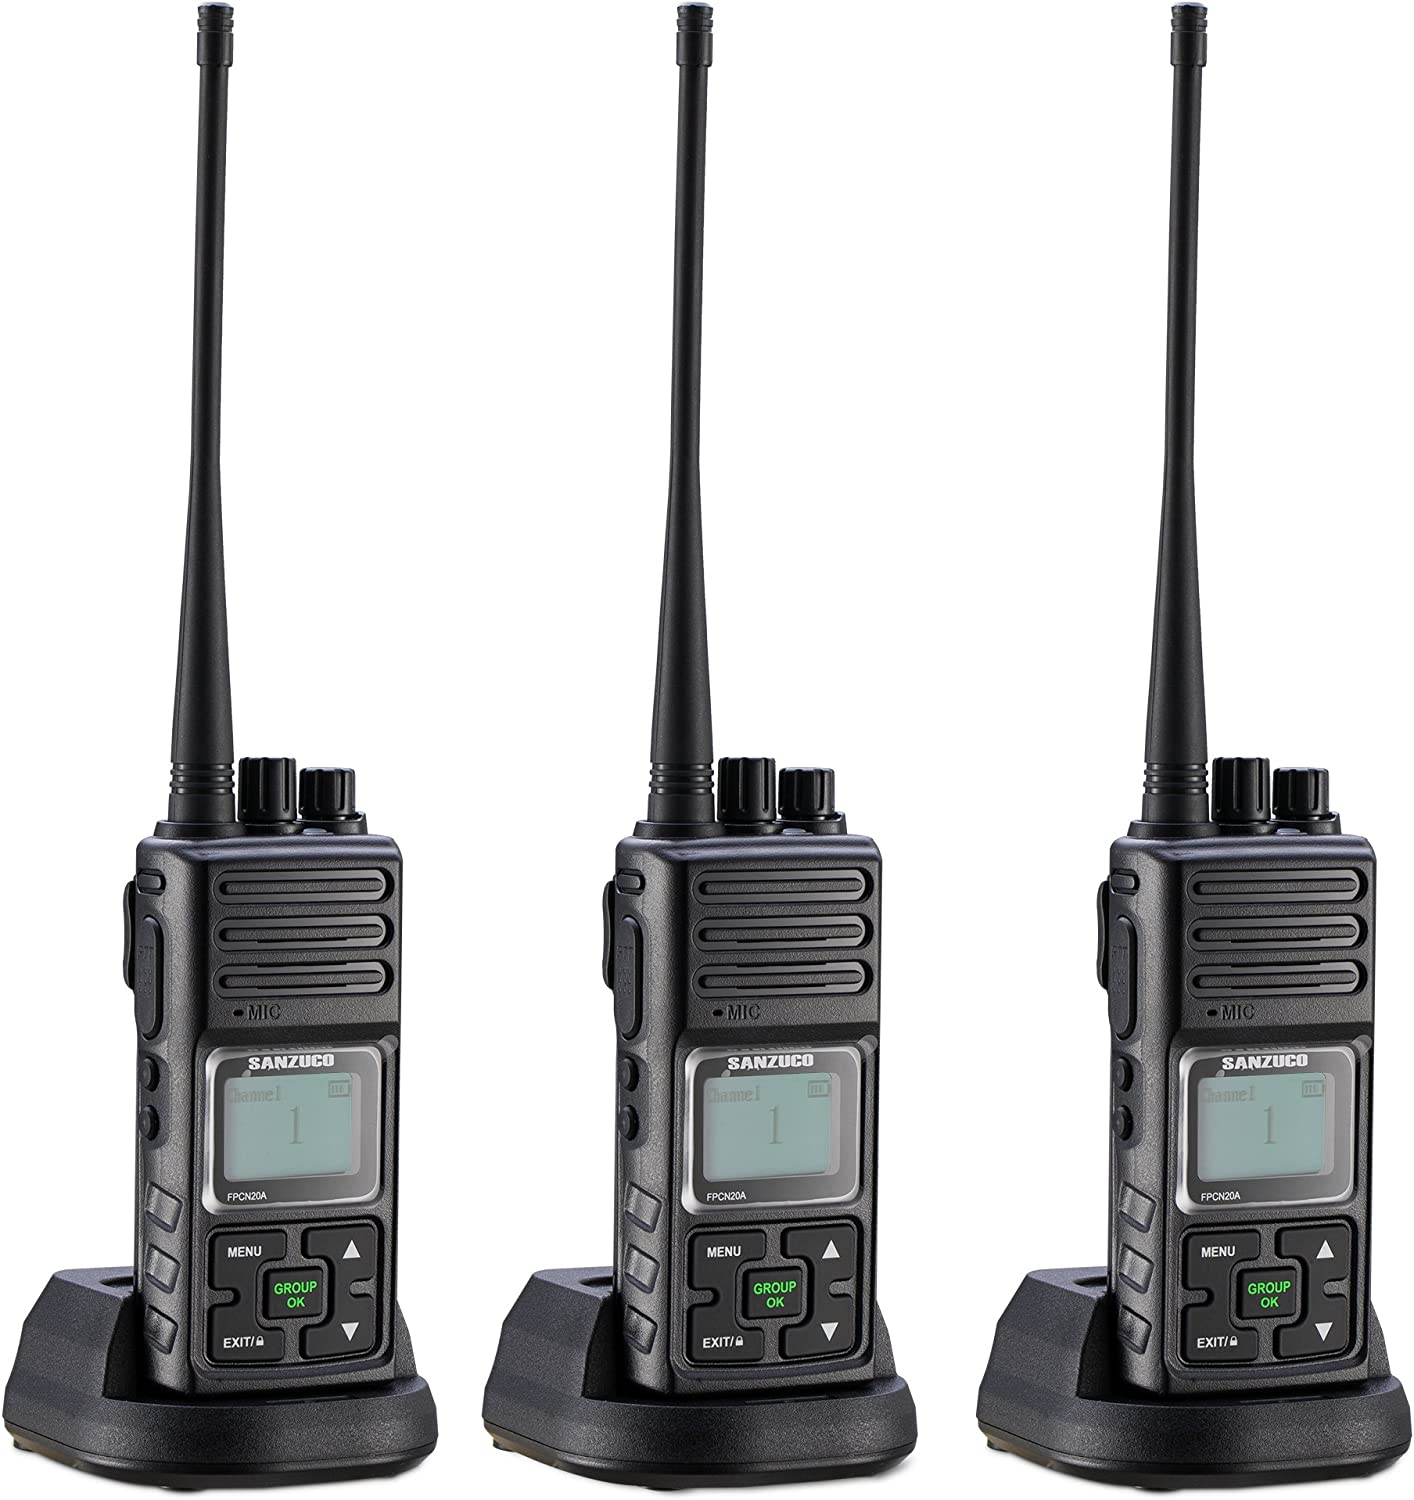 2 Way Radios Rechargable, 20 Channel UHF 400-470MHz Two- Way Radios Long Range with Group Talk and LCD Display Black,Pack of 3